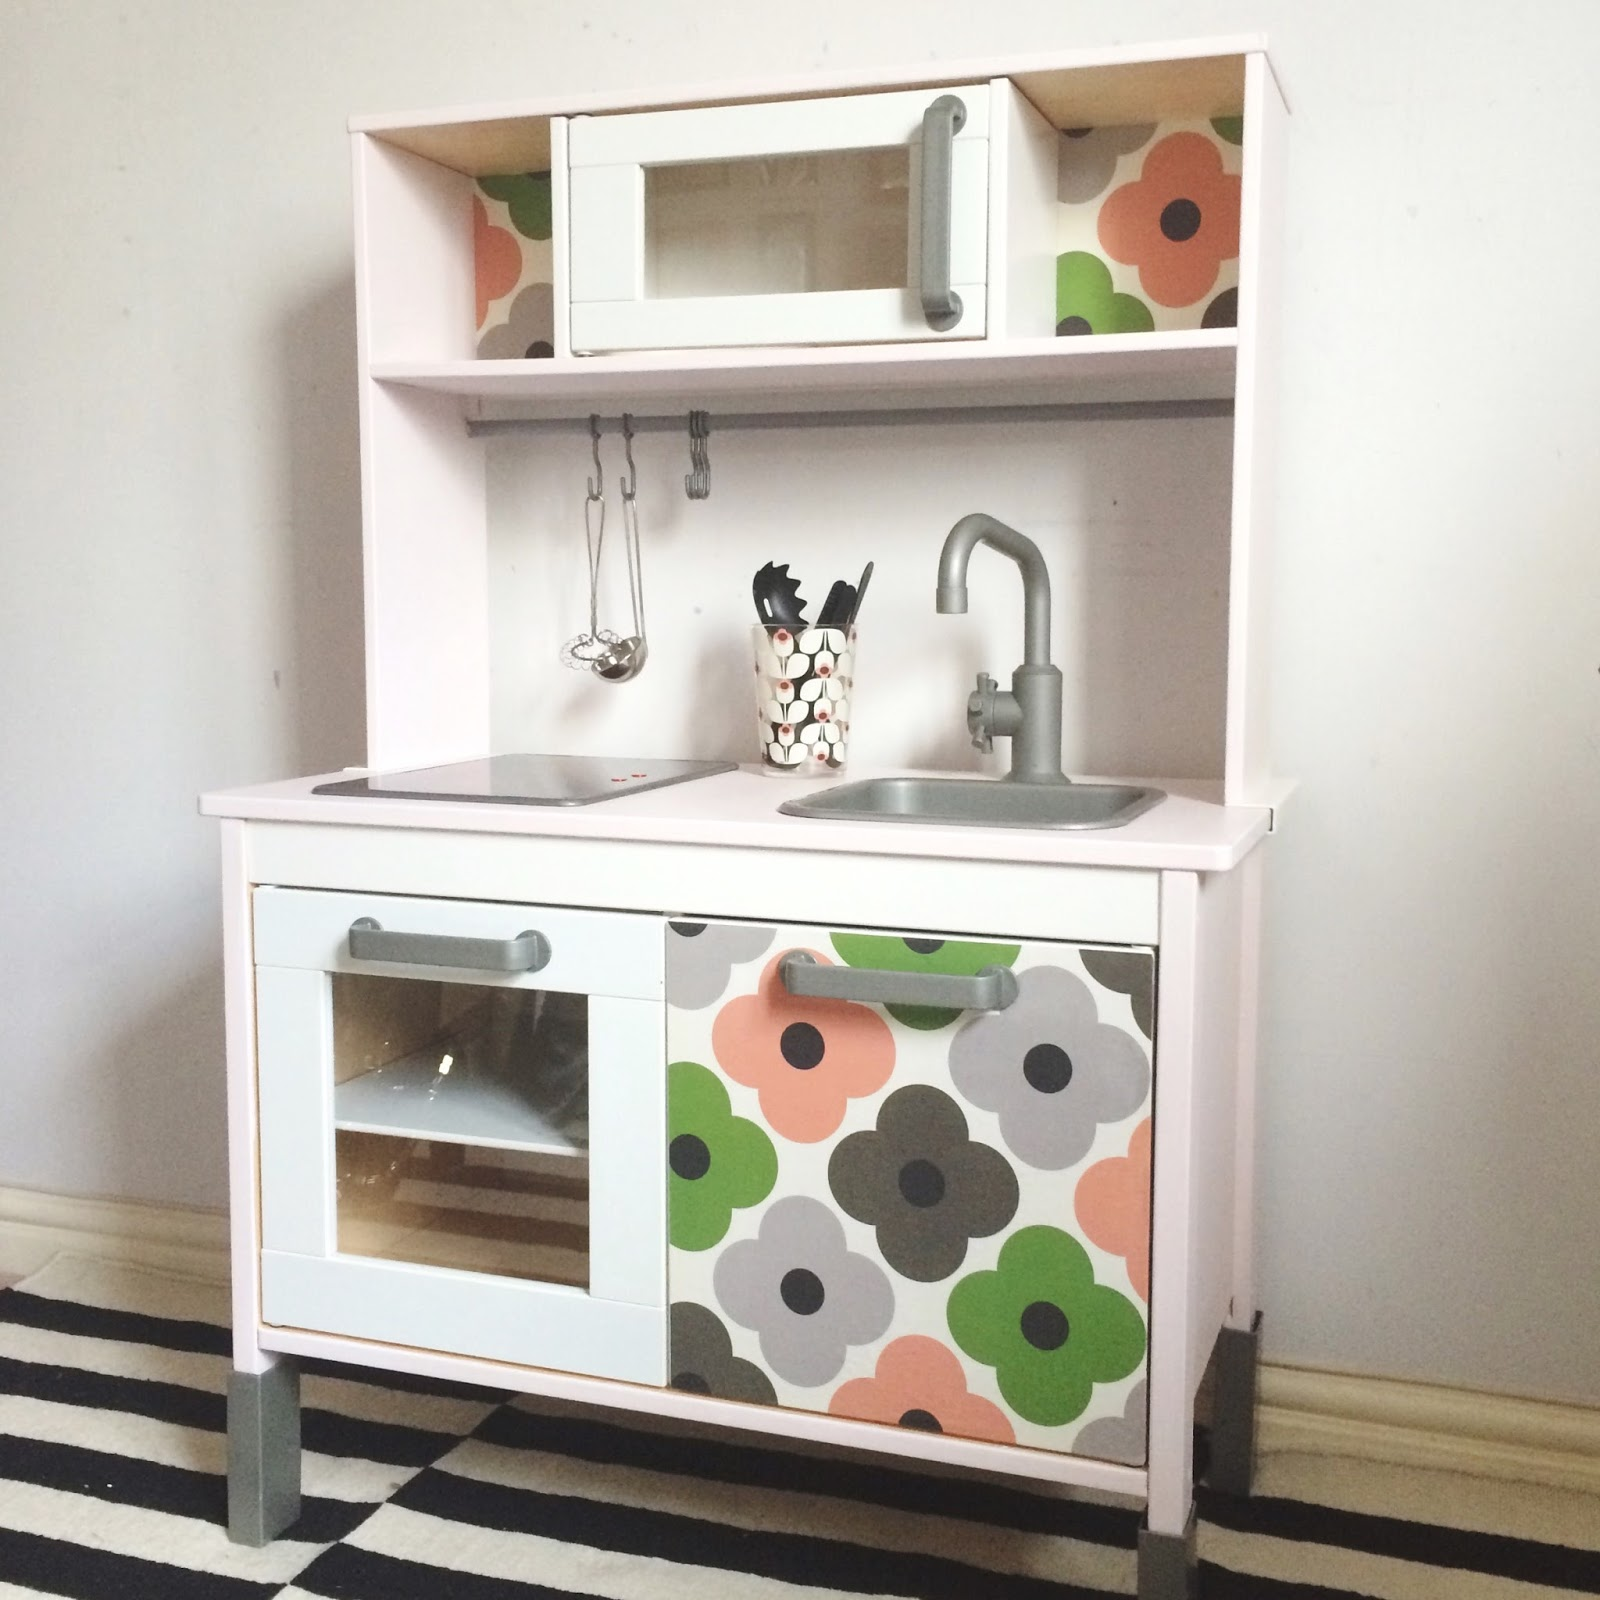 me myself and ivy in ikea duktig play kitchen. Black Bedroom Furniture Sets. Home Design Ideas